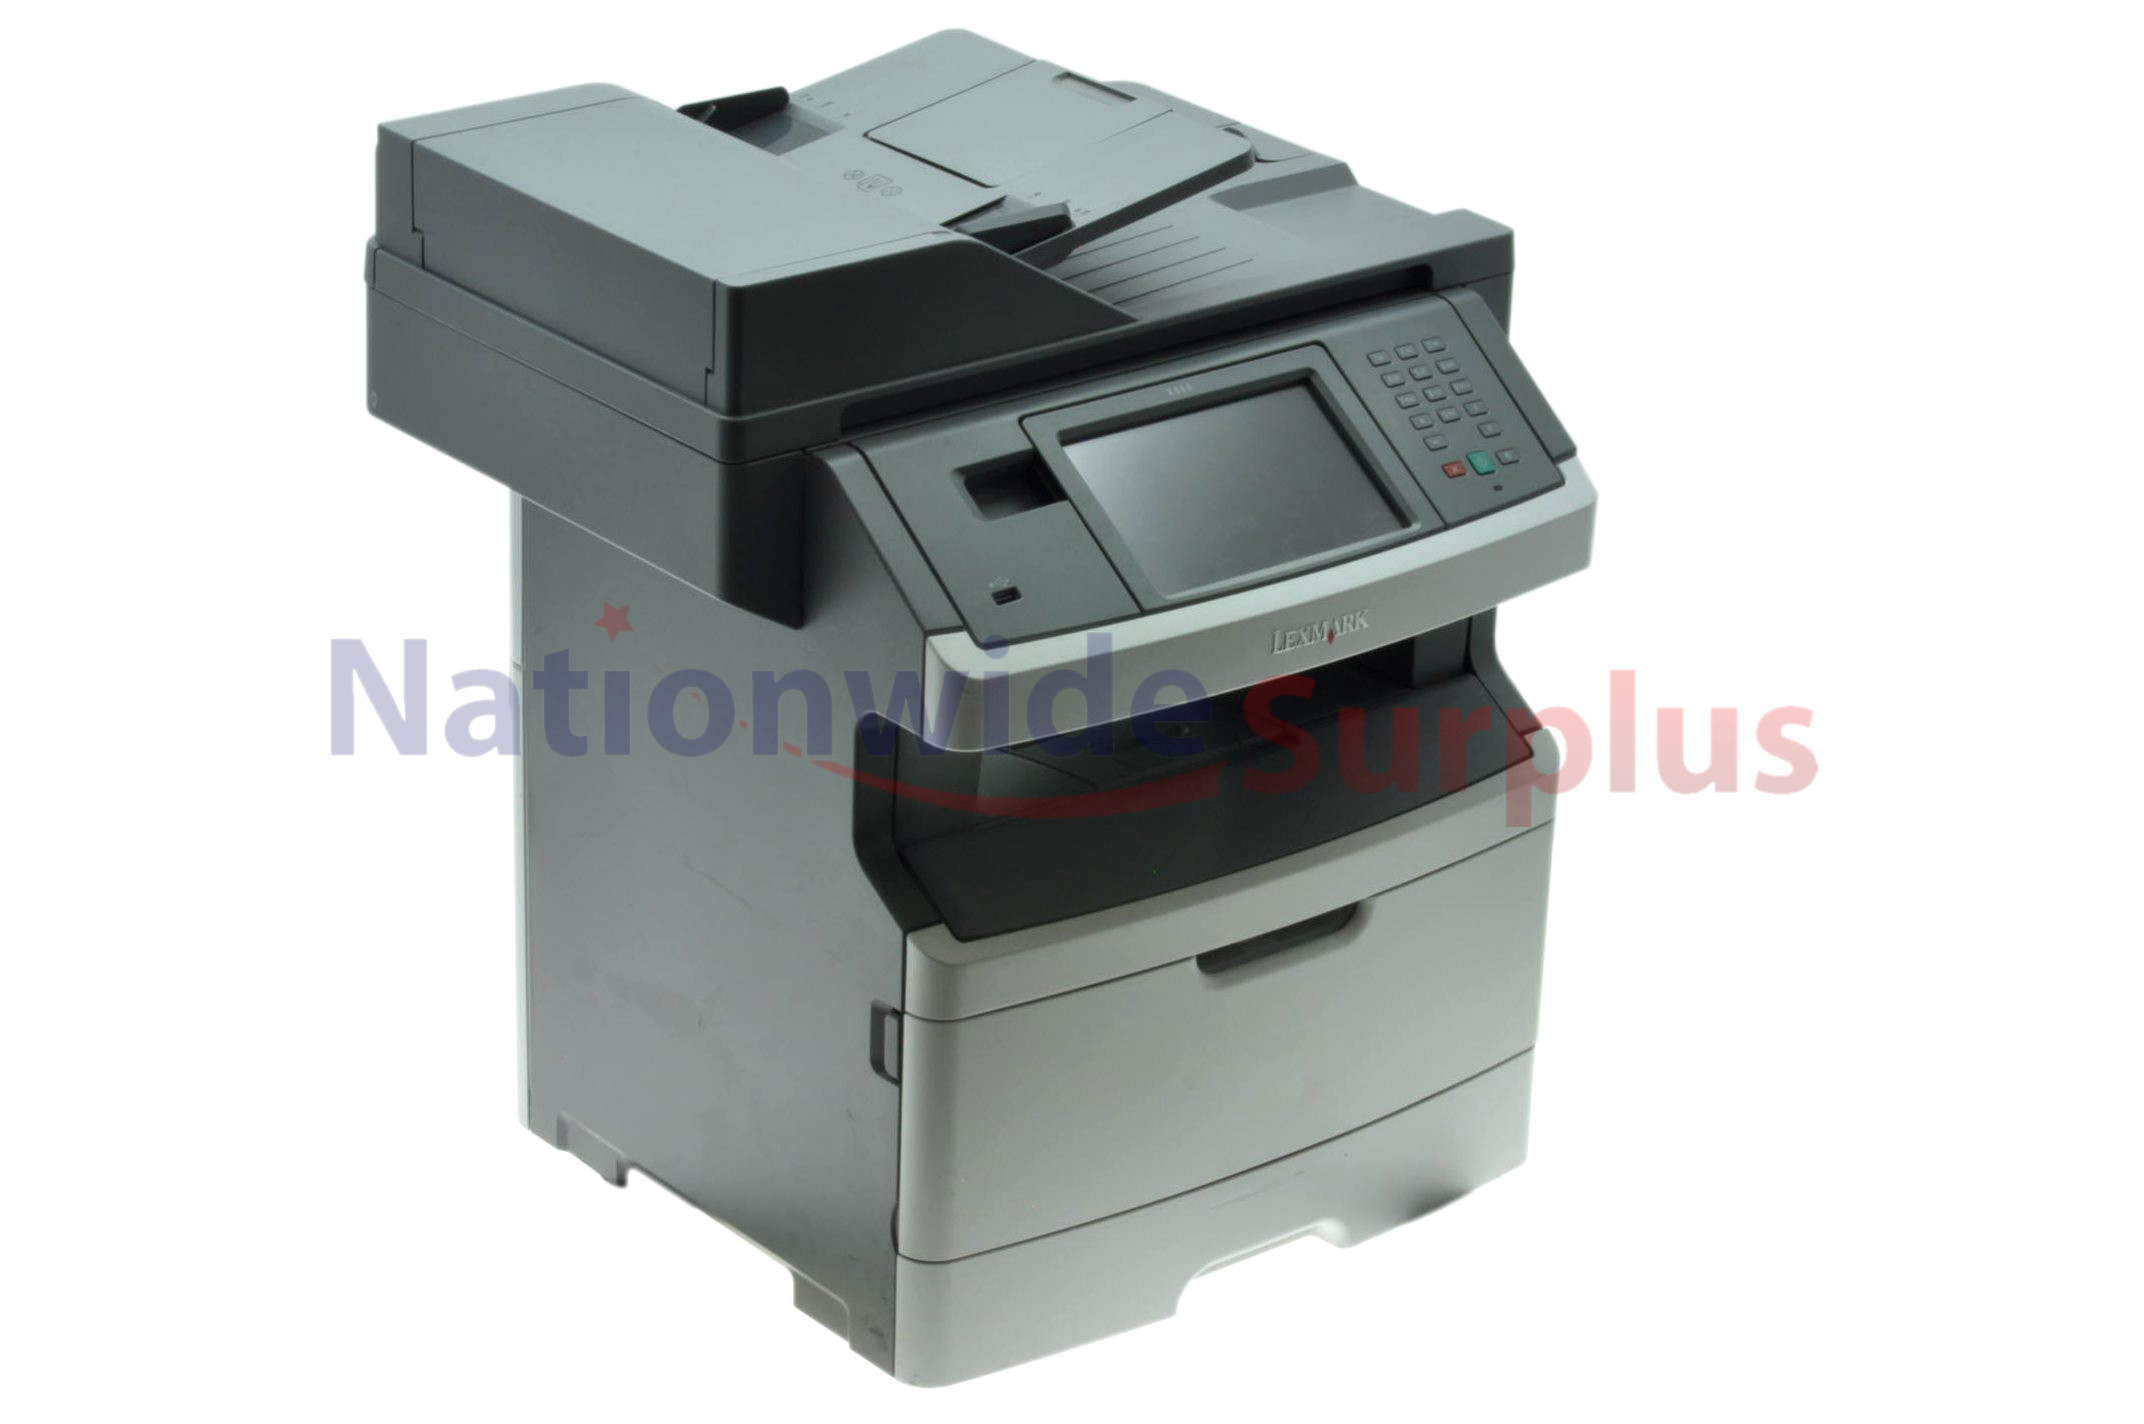 fax machine printer copier